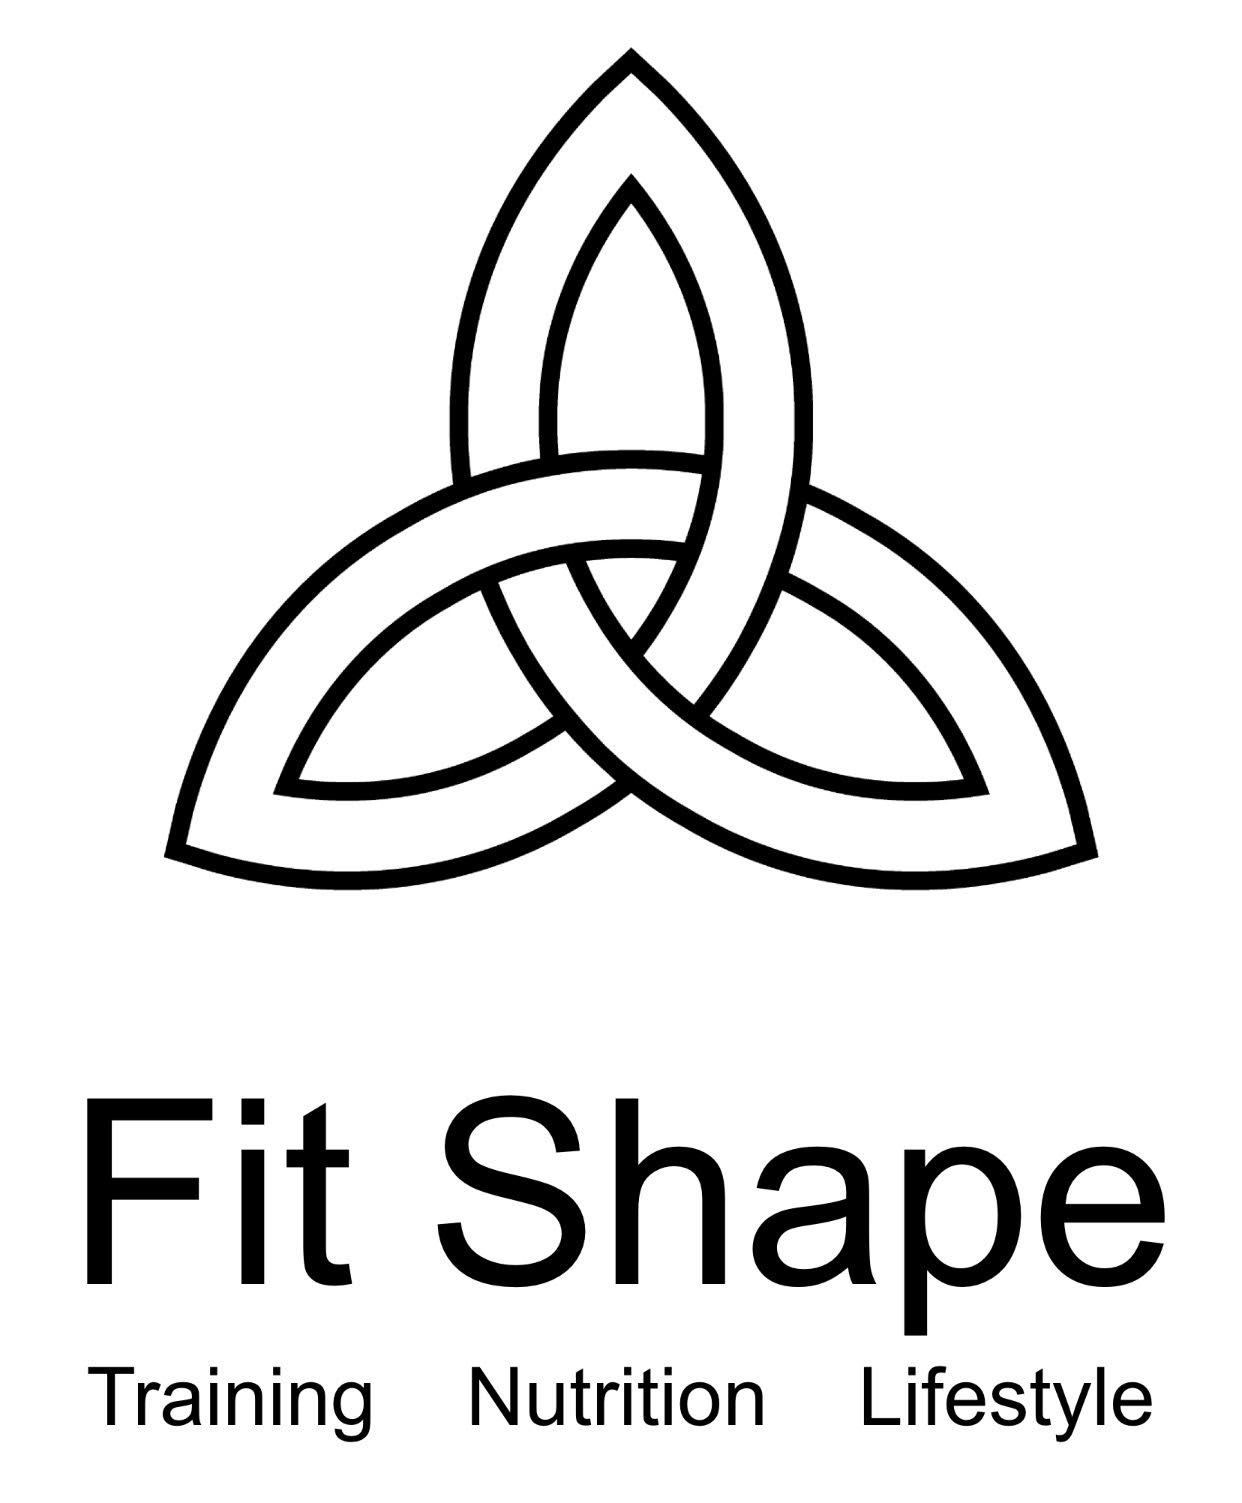 Fit Shape